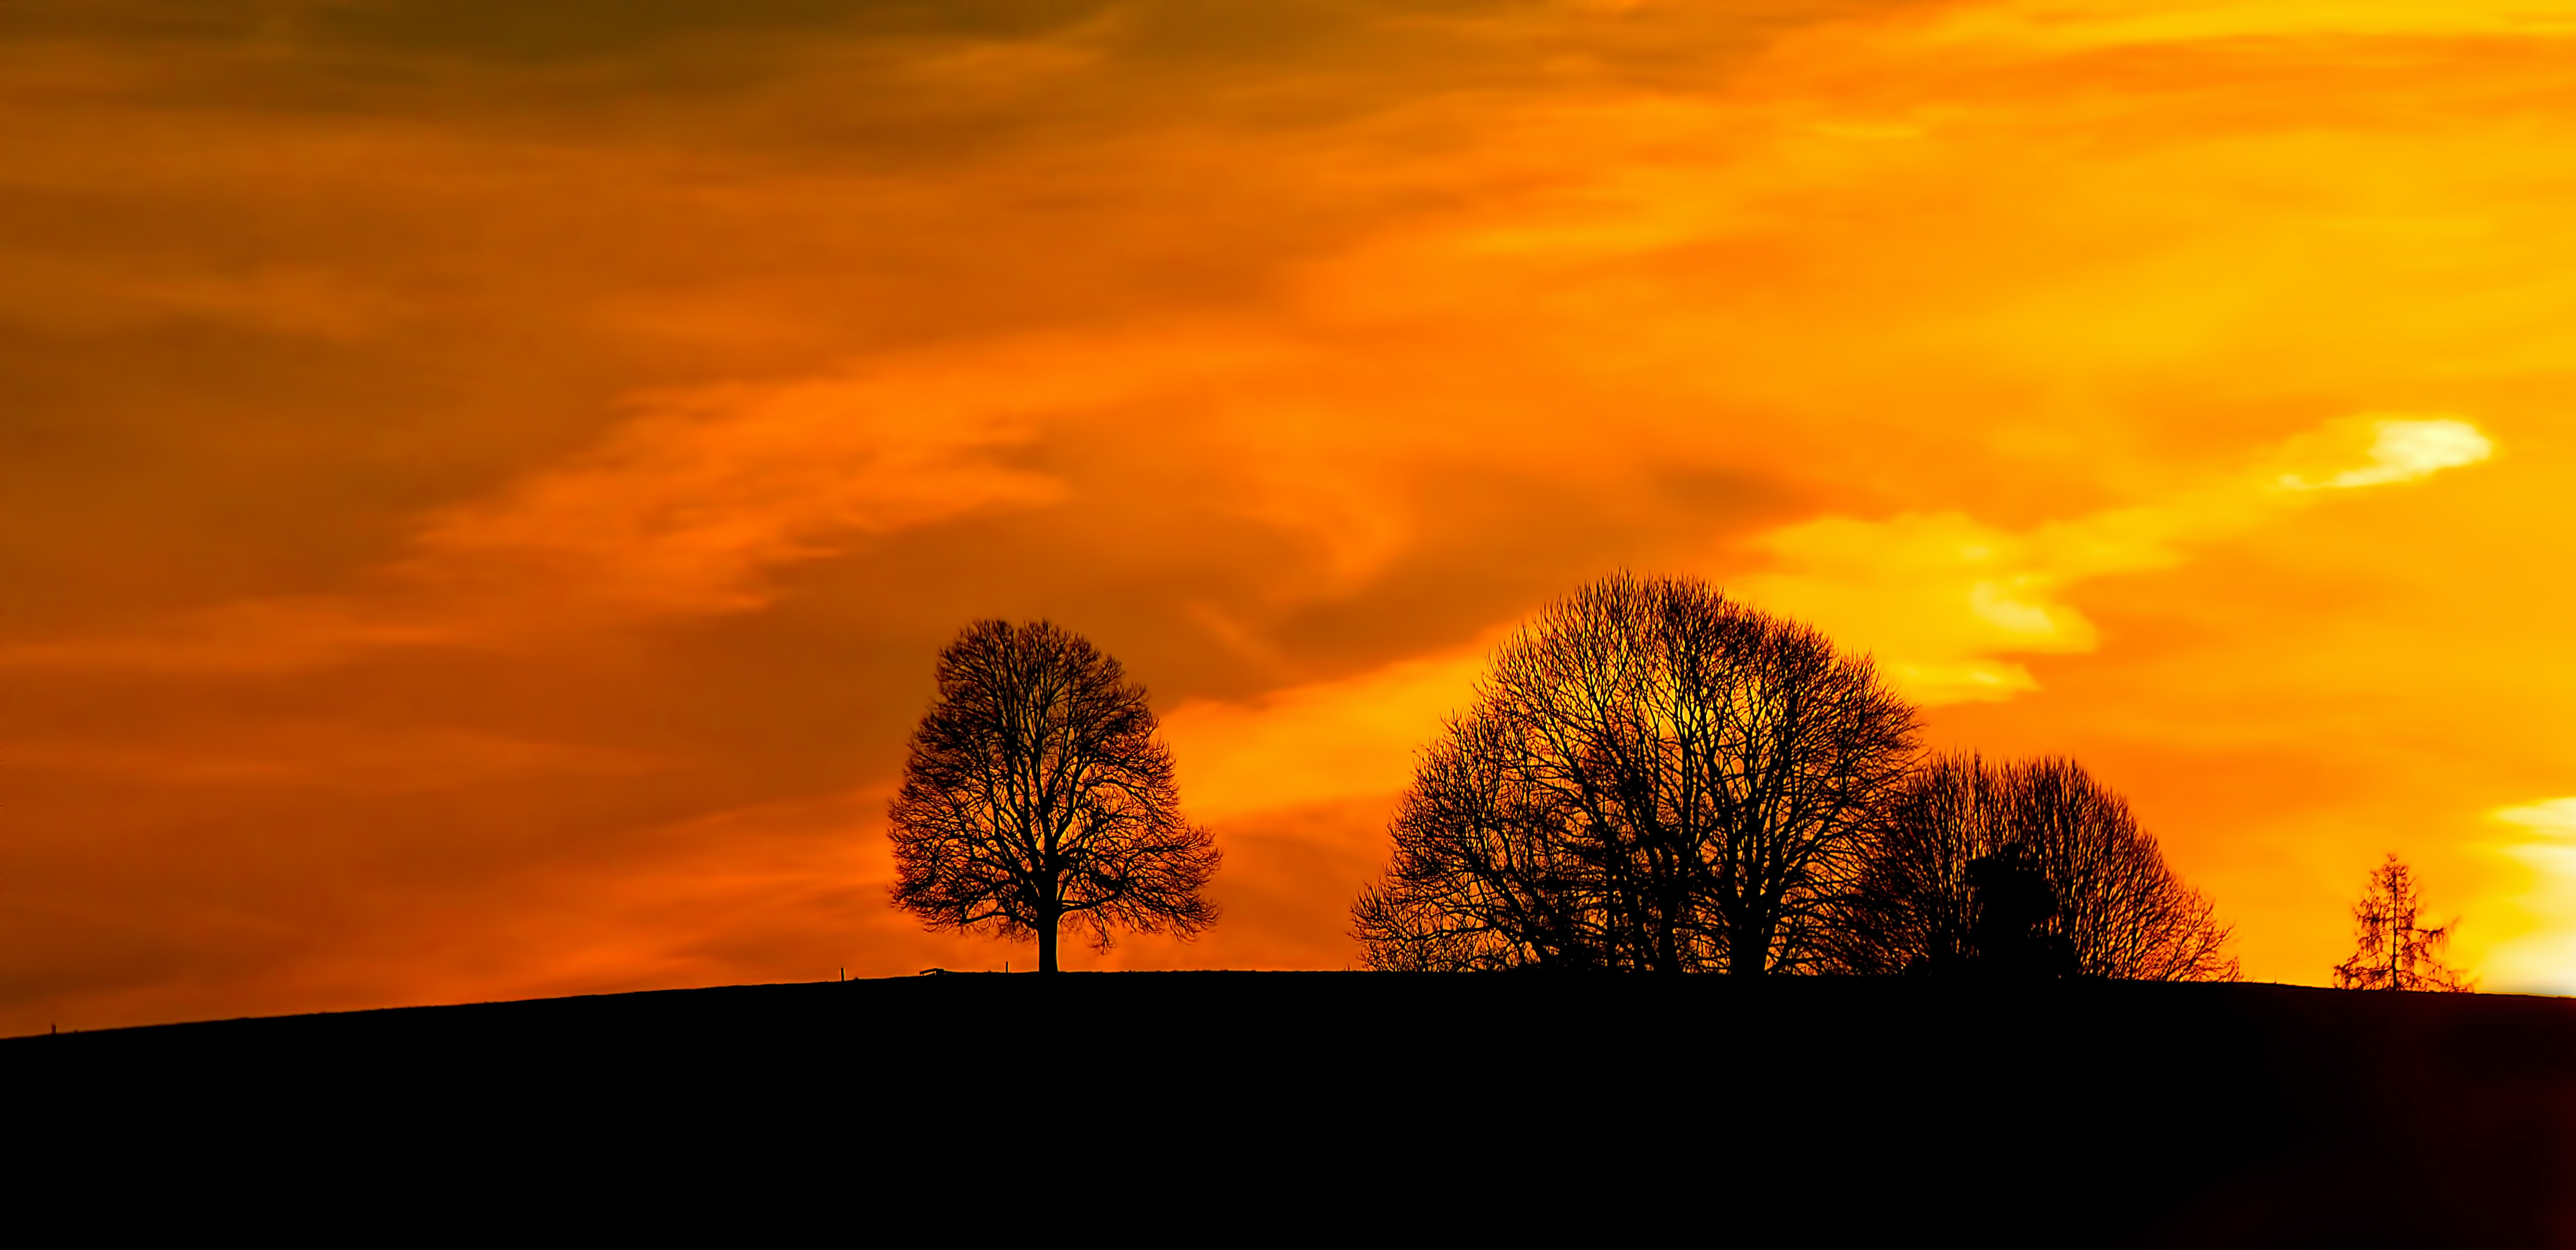 Trees on a hill are set in silhouette against a deep orange and yellow sunset.